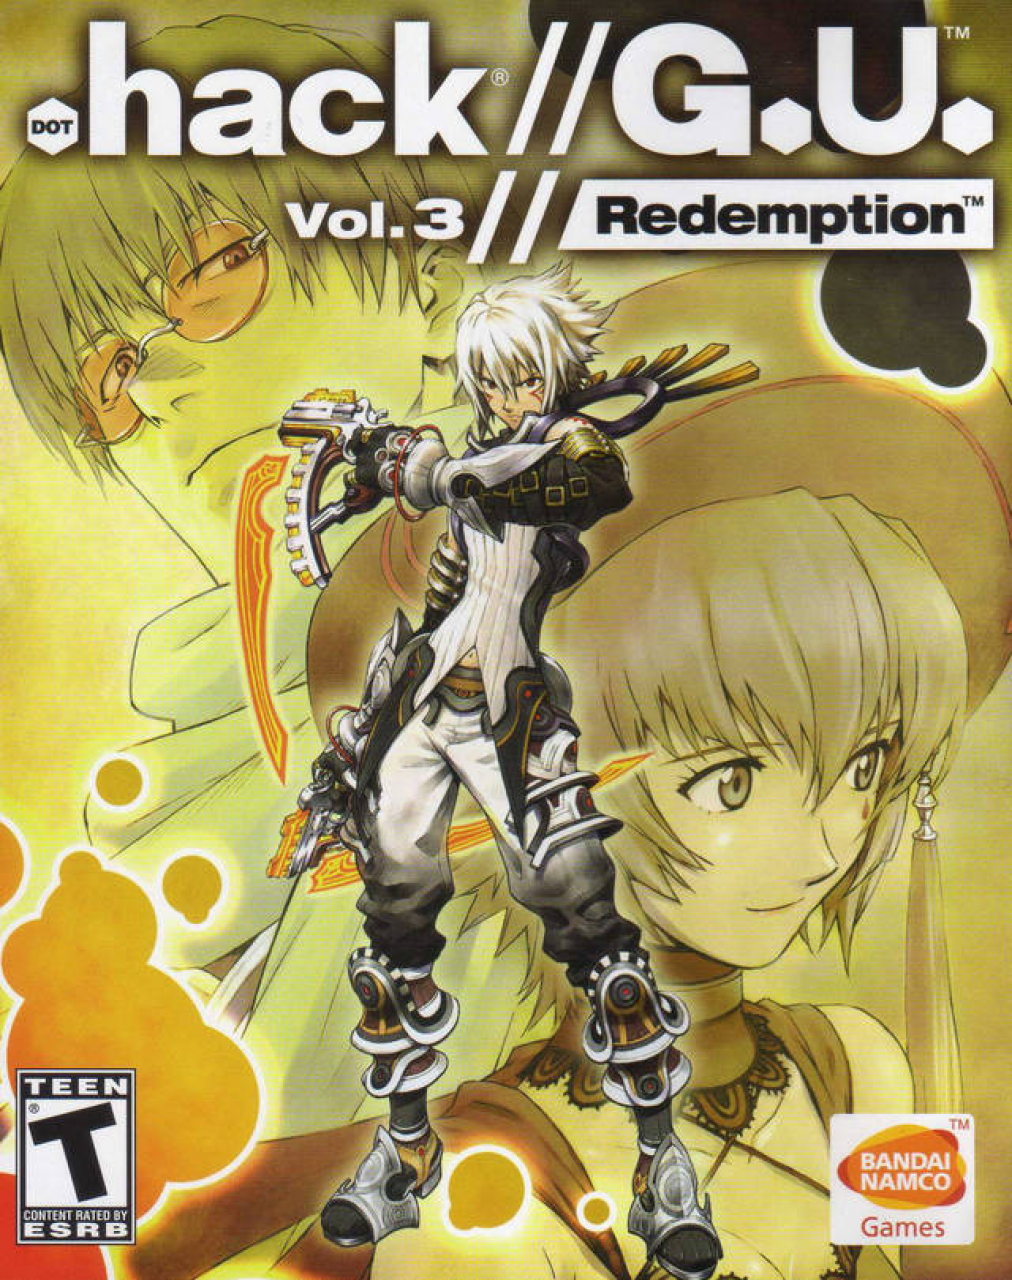 .hack//G.U. Vol. 3: Redemption